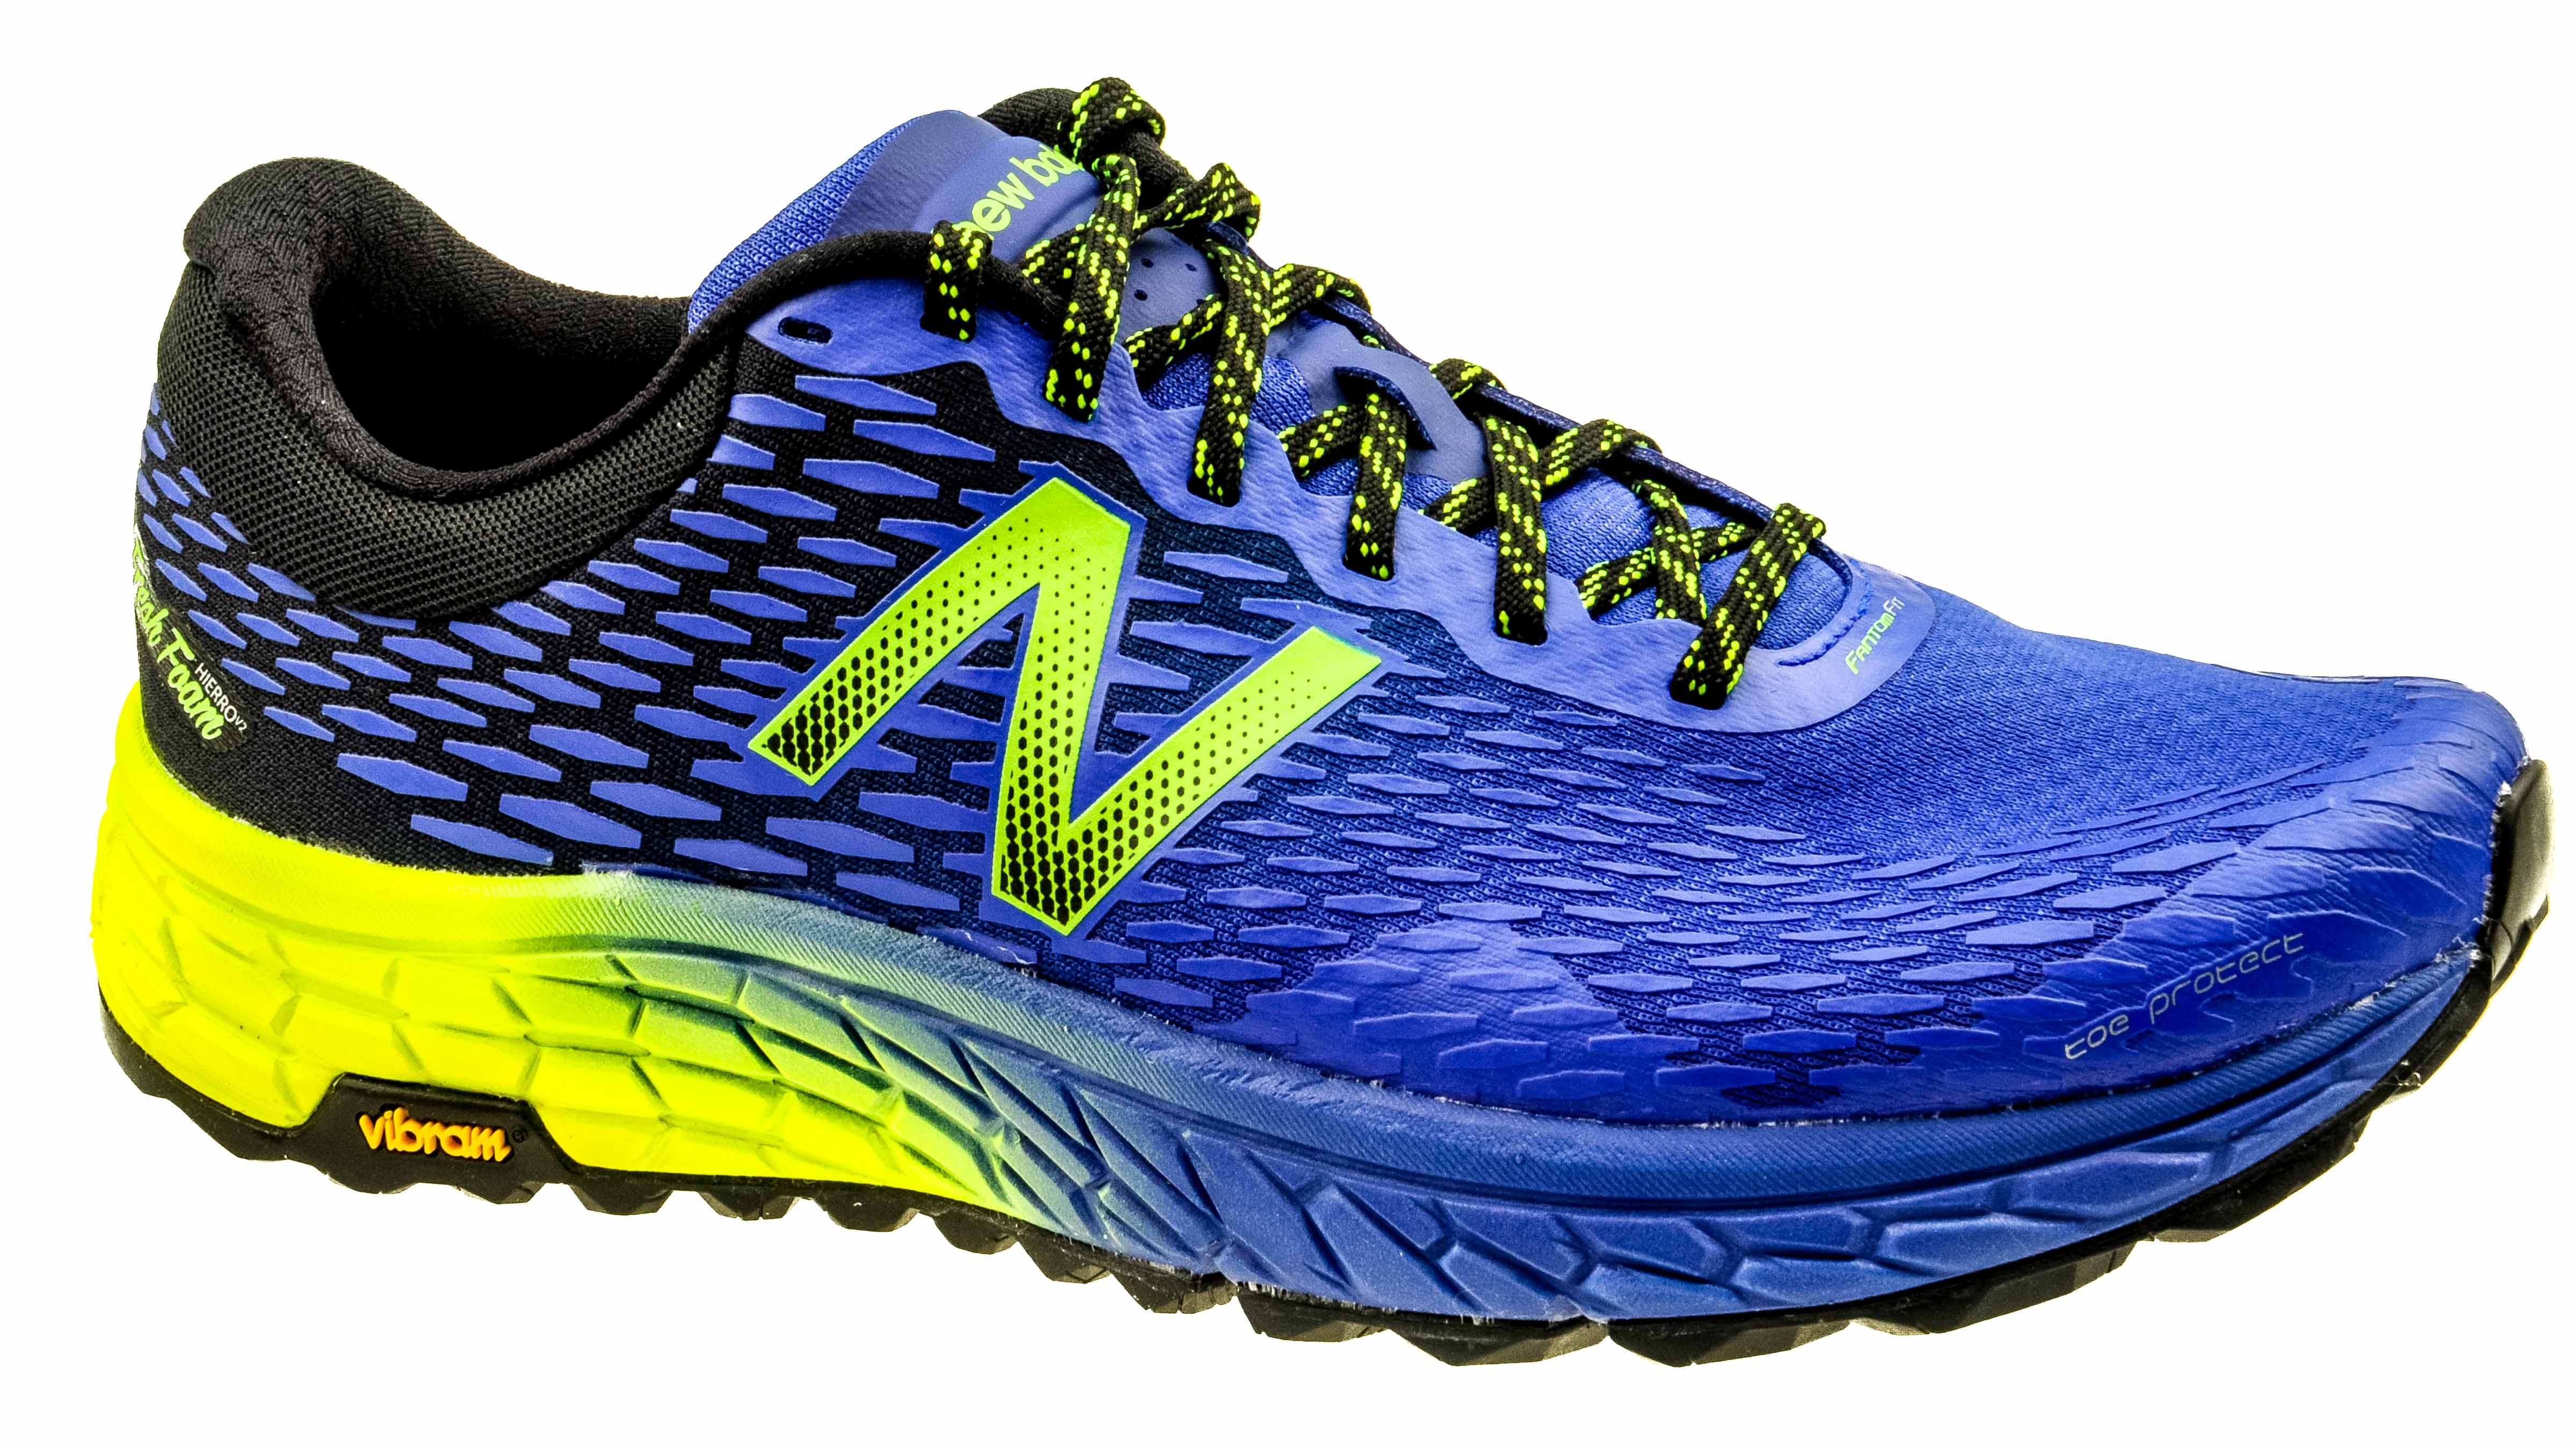 crazy price shop for original highly coveted range of New Balance Fresh Foam Hierro 2 electric-blue/uv blue/hi-lite